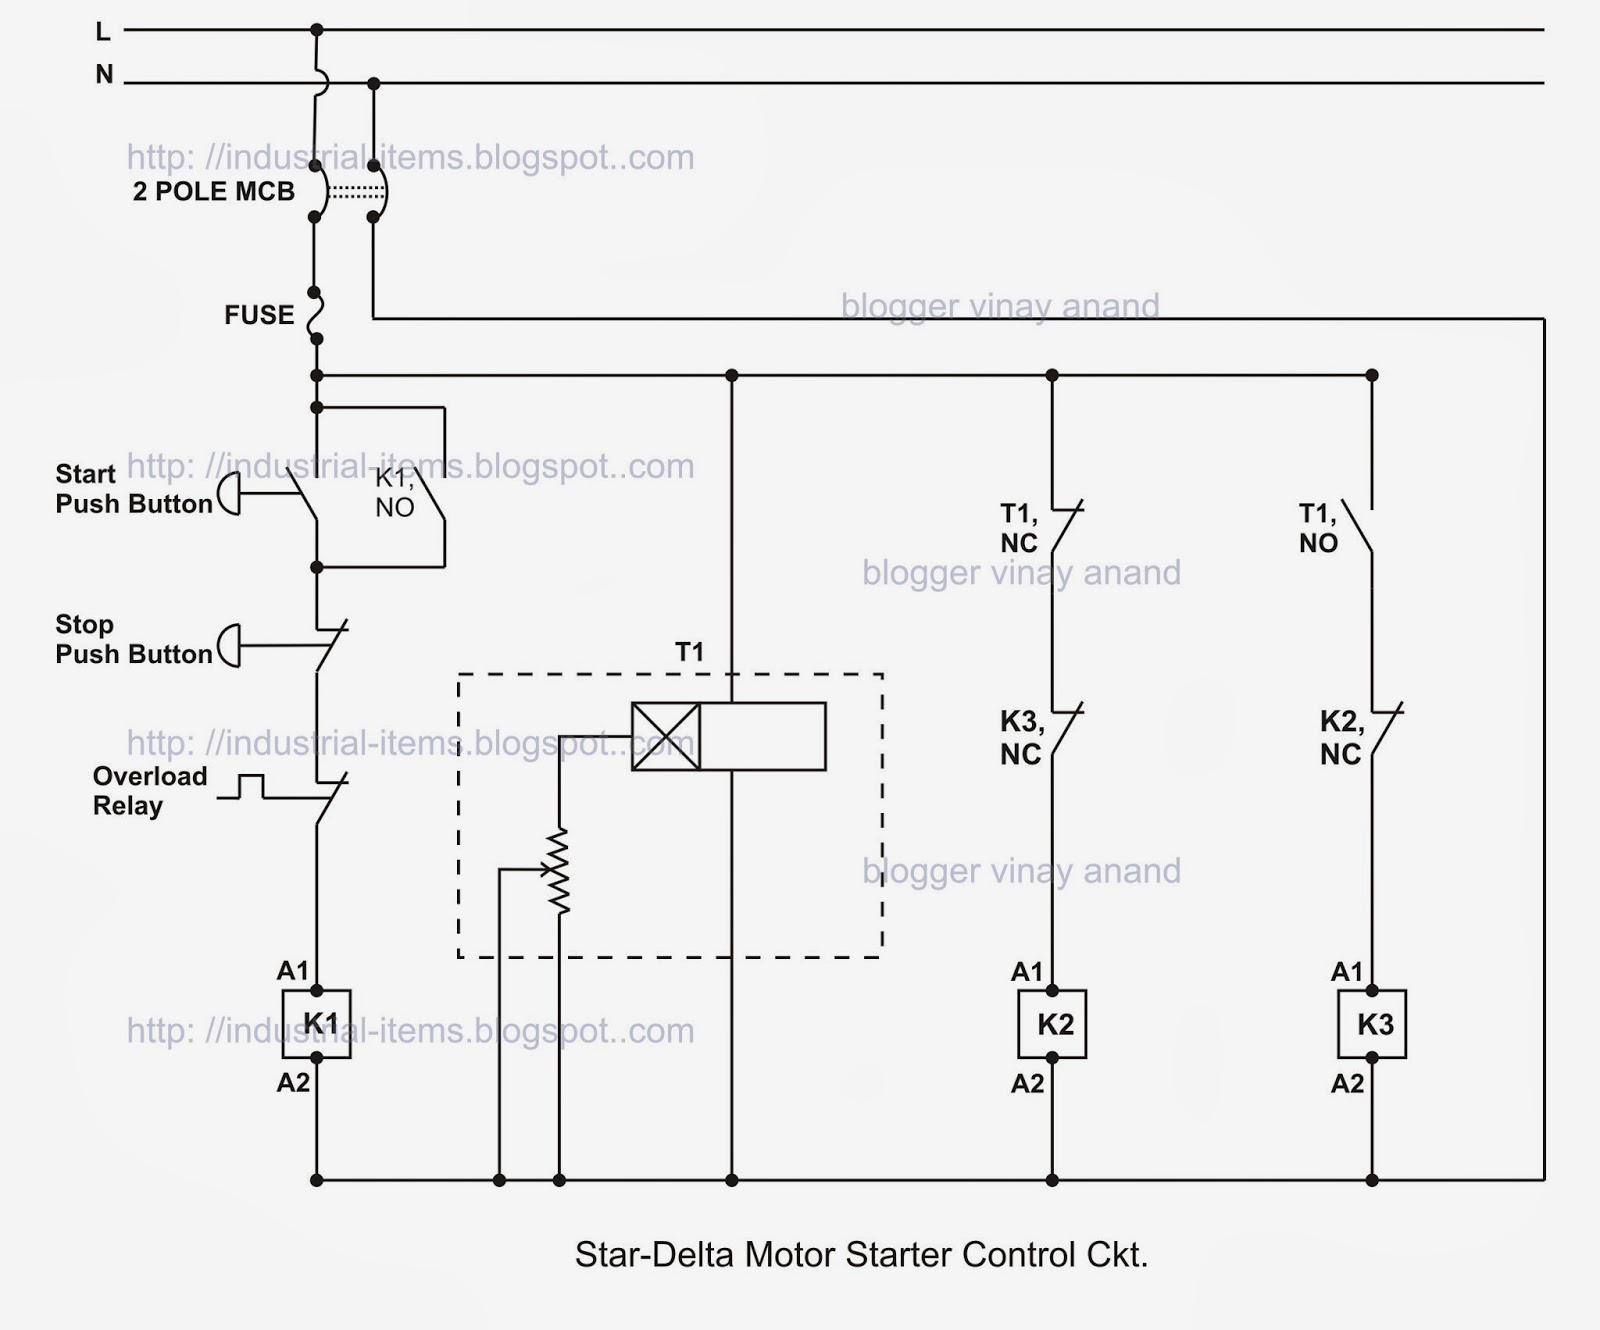 E0F Star Delta Motor Starter Wiring Diagram Pdf | Wiring Resourcespennsylvania-tv2102.ddns.us